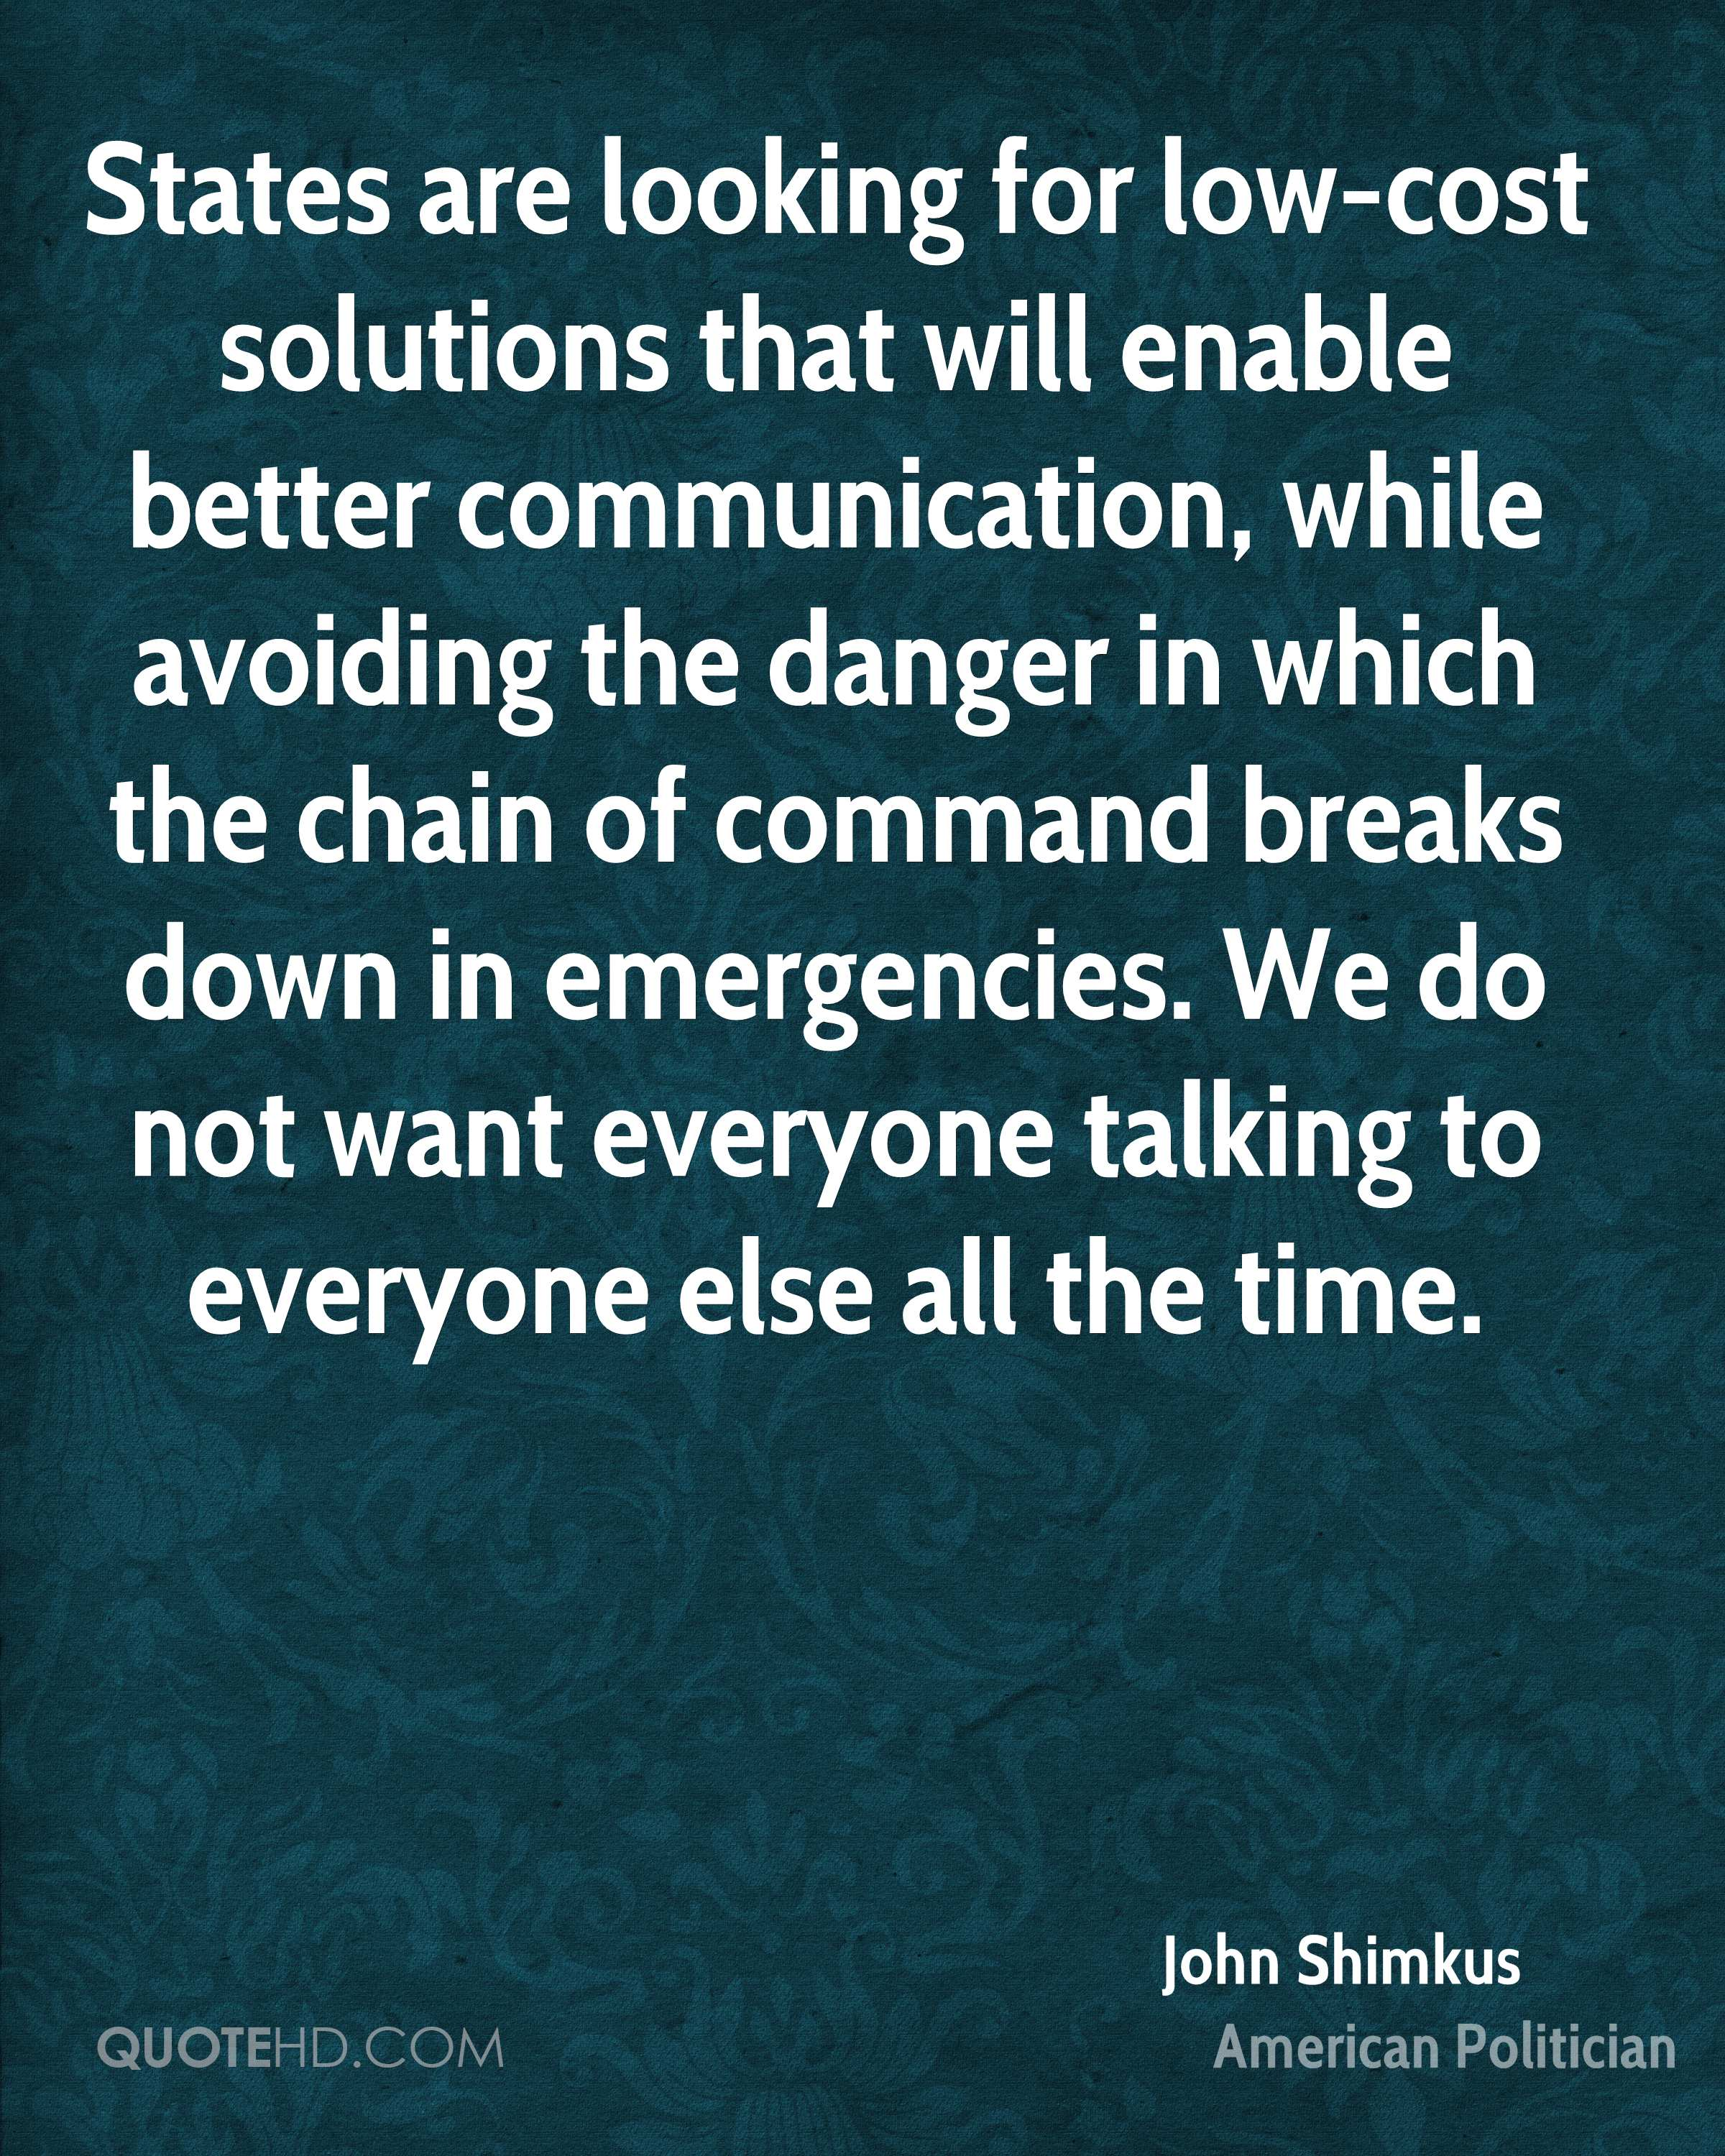 States are looking for low-cost solutions that will enable better communication, while avoiding the danger in which the chain of command breaks down in emergencies. We do not want everyone talking to everyone else all the time.